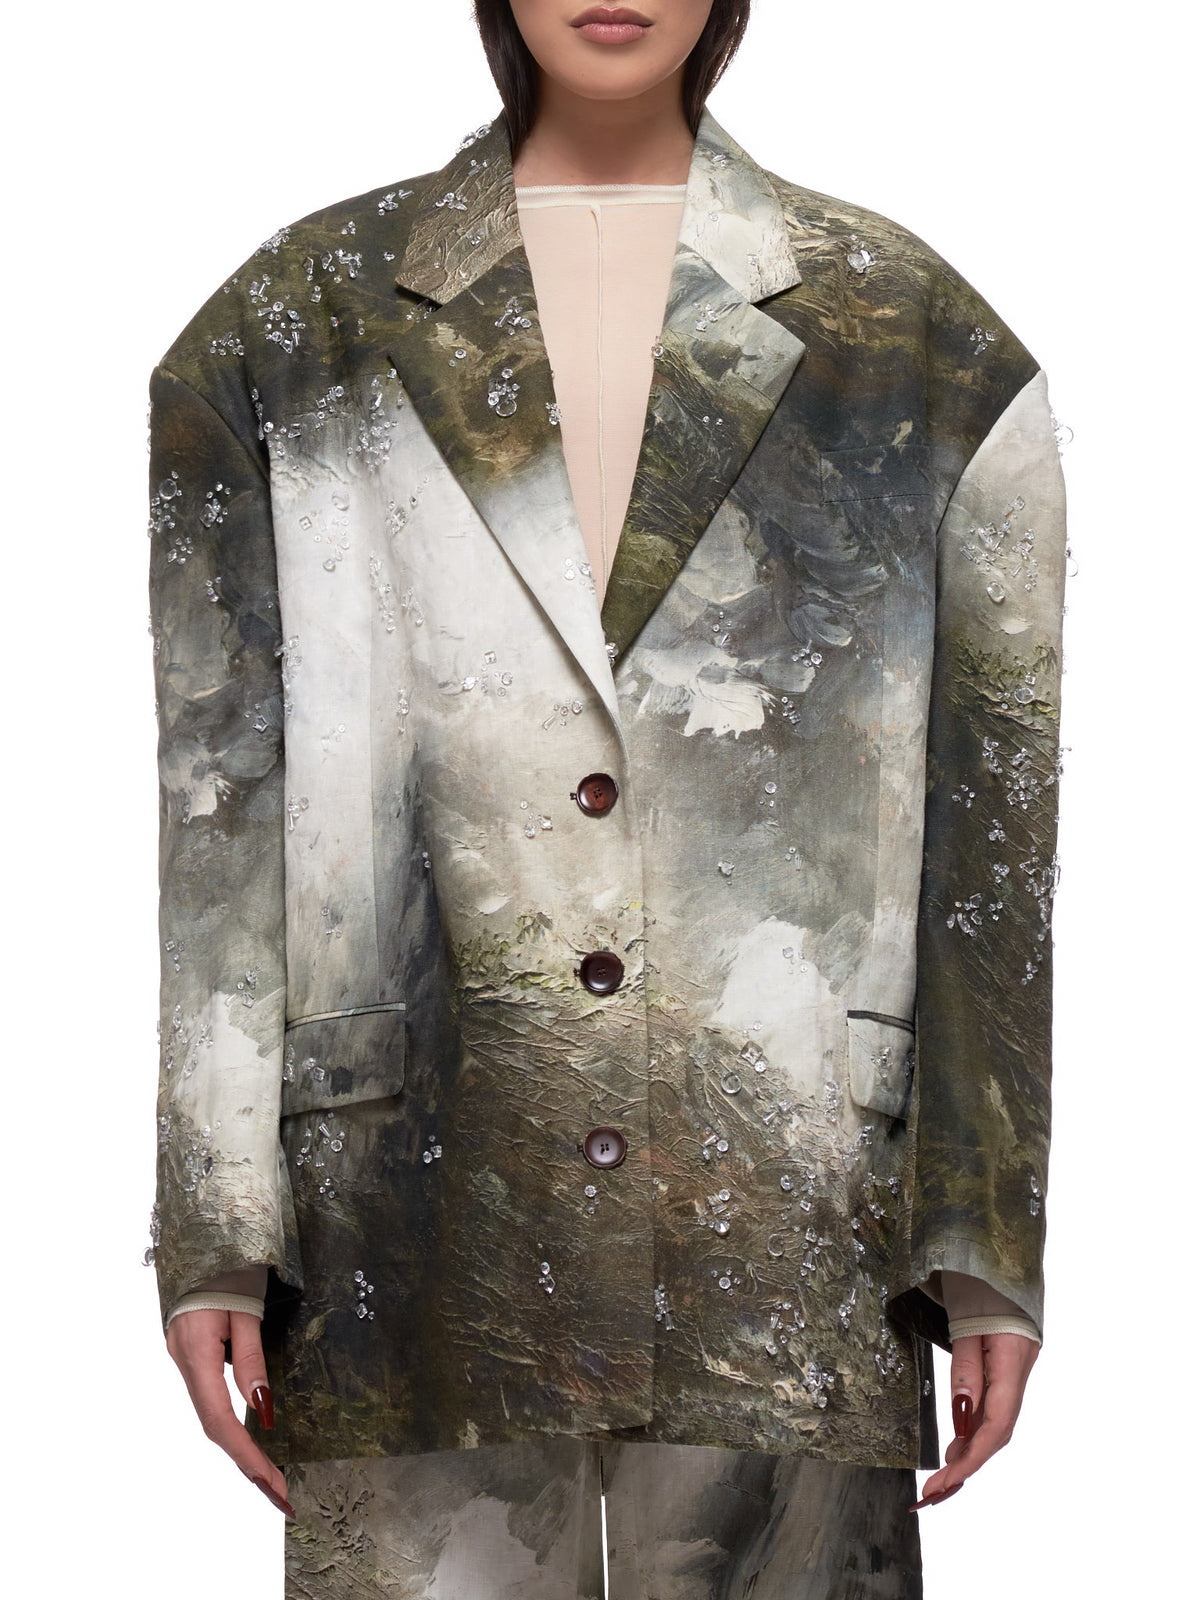 Camouflage & Crystal Suit Jacket (SUIT000167-BROWN-WHITE)